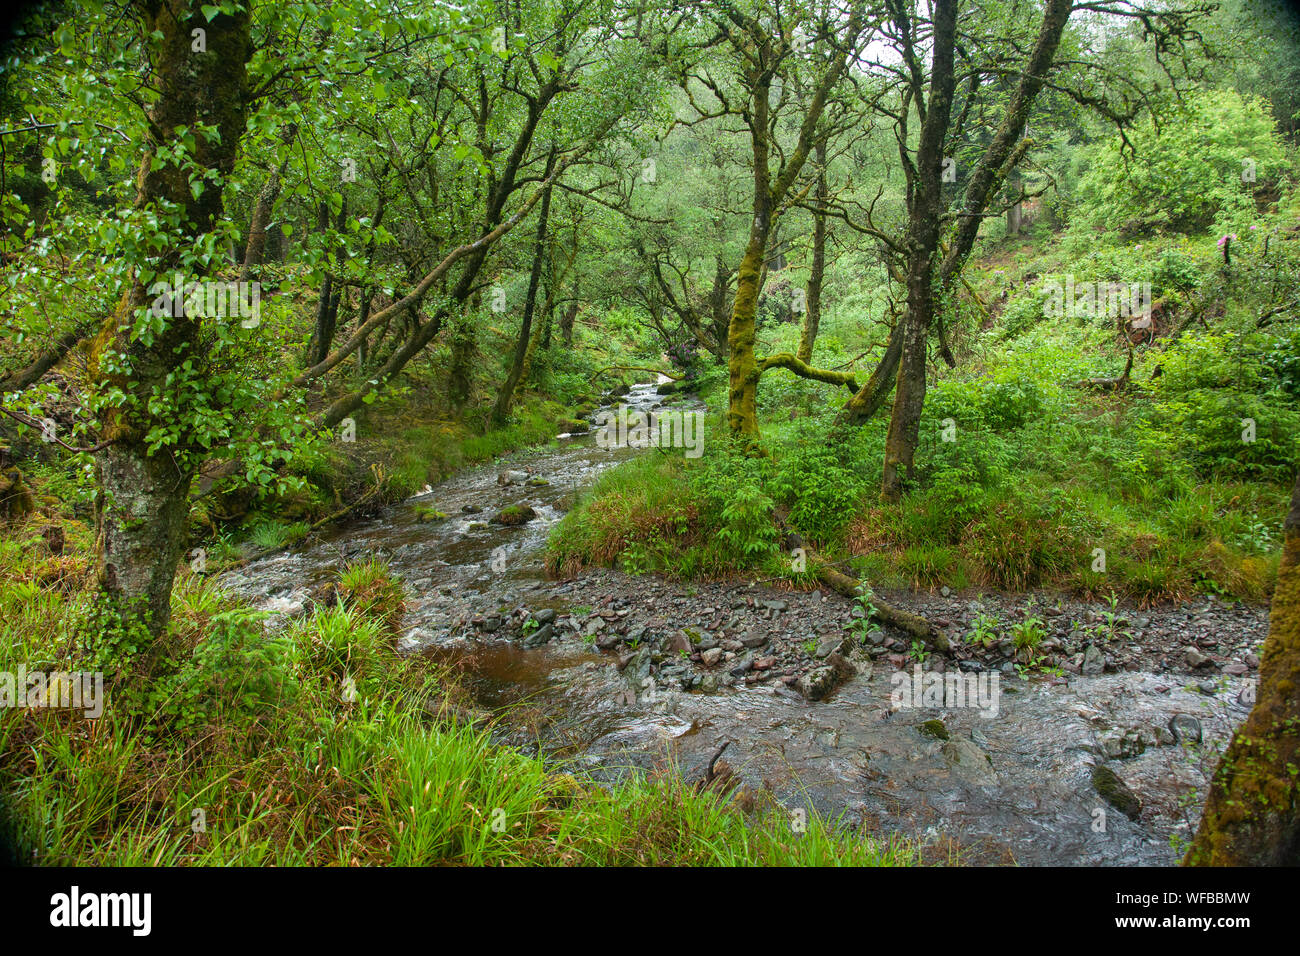 River running through a forest, Isle of Arran, Scotland, United Kingdom Stock Photo